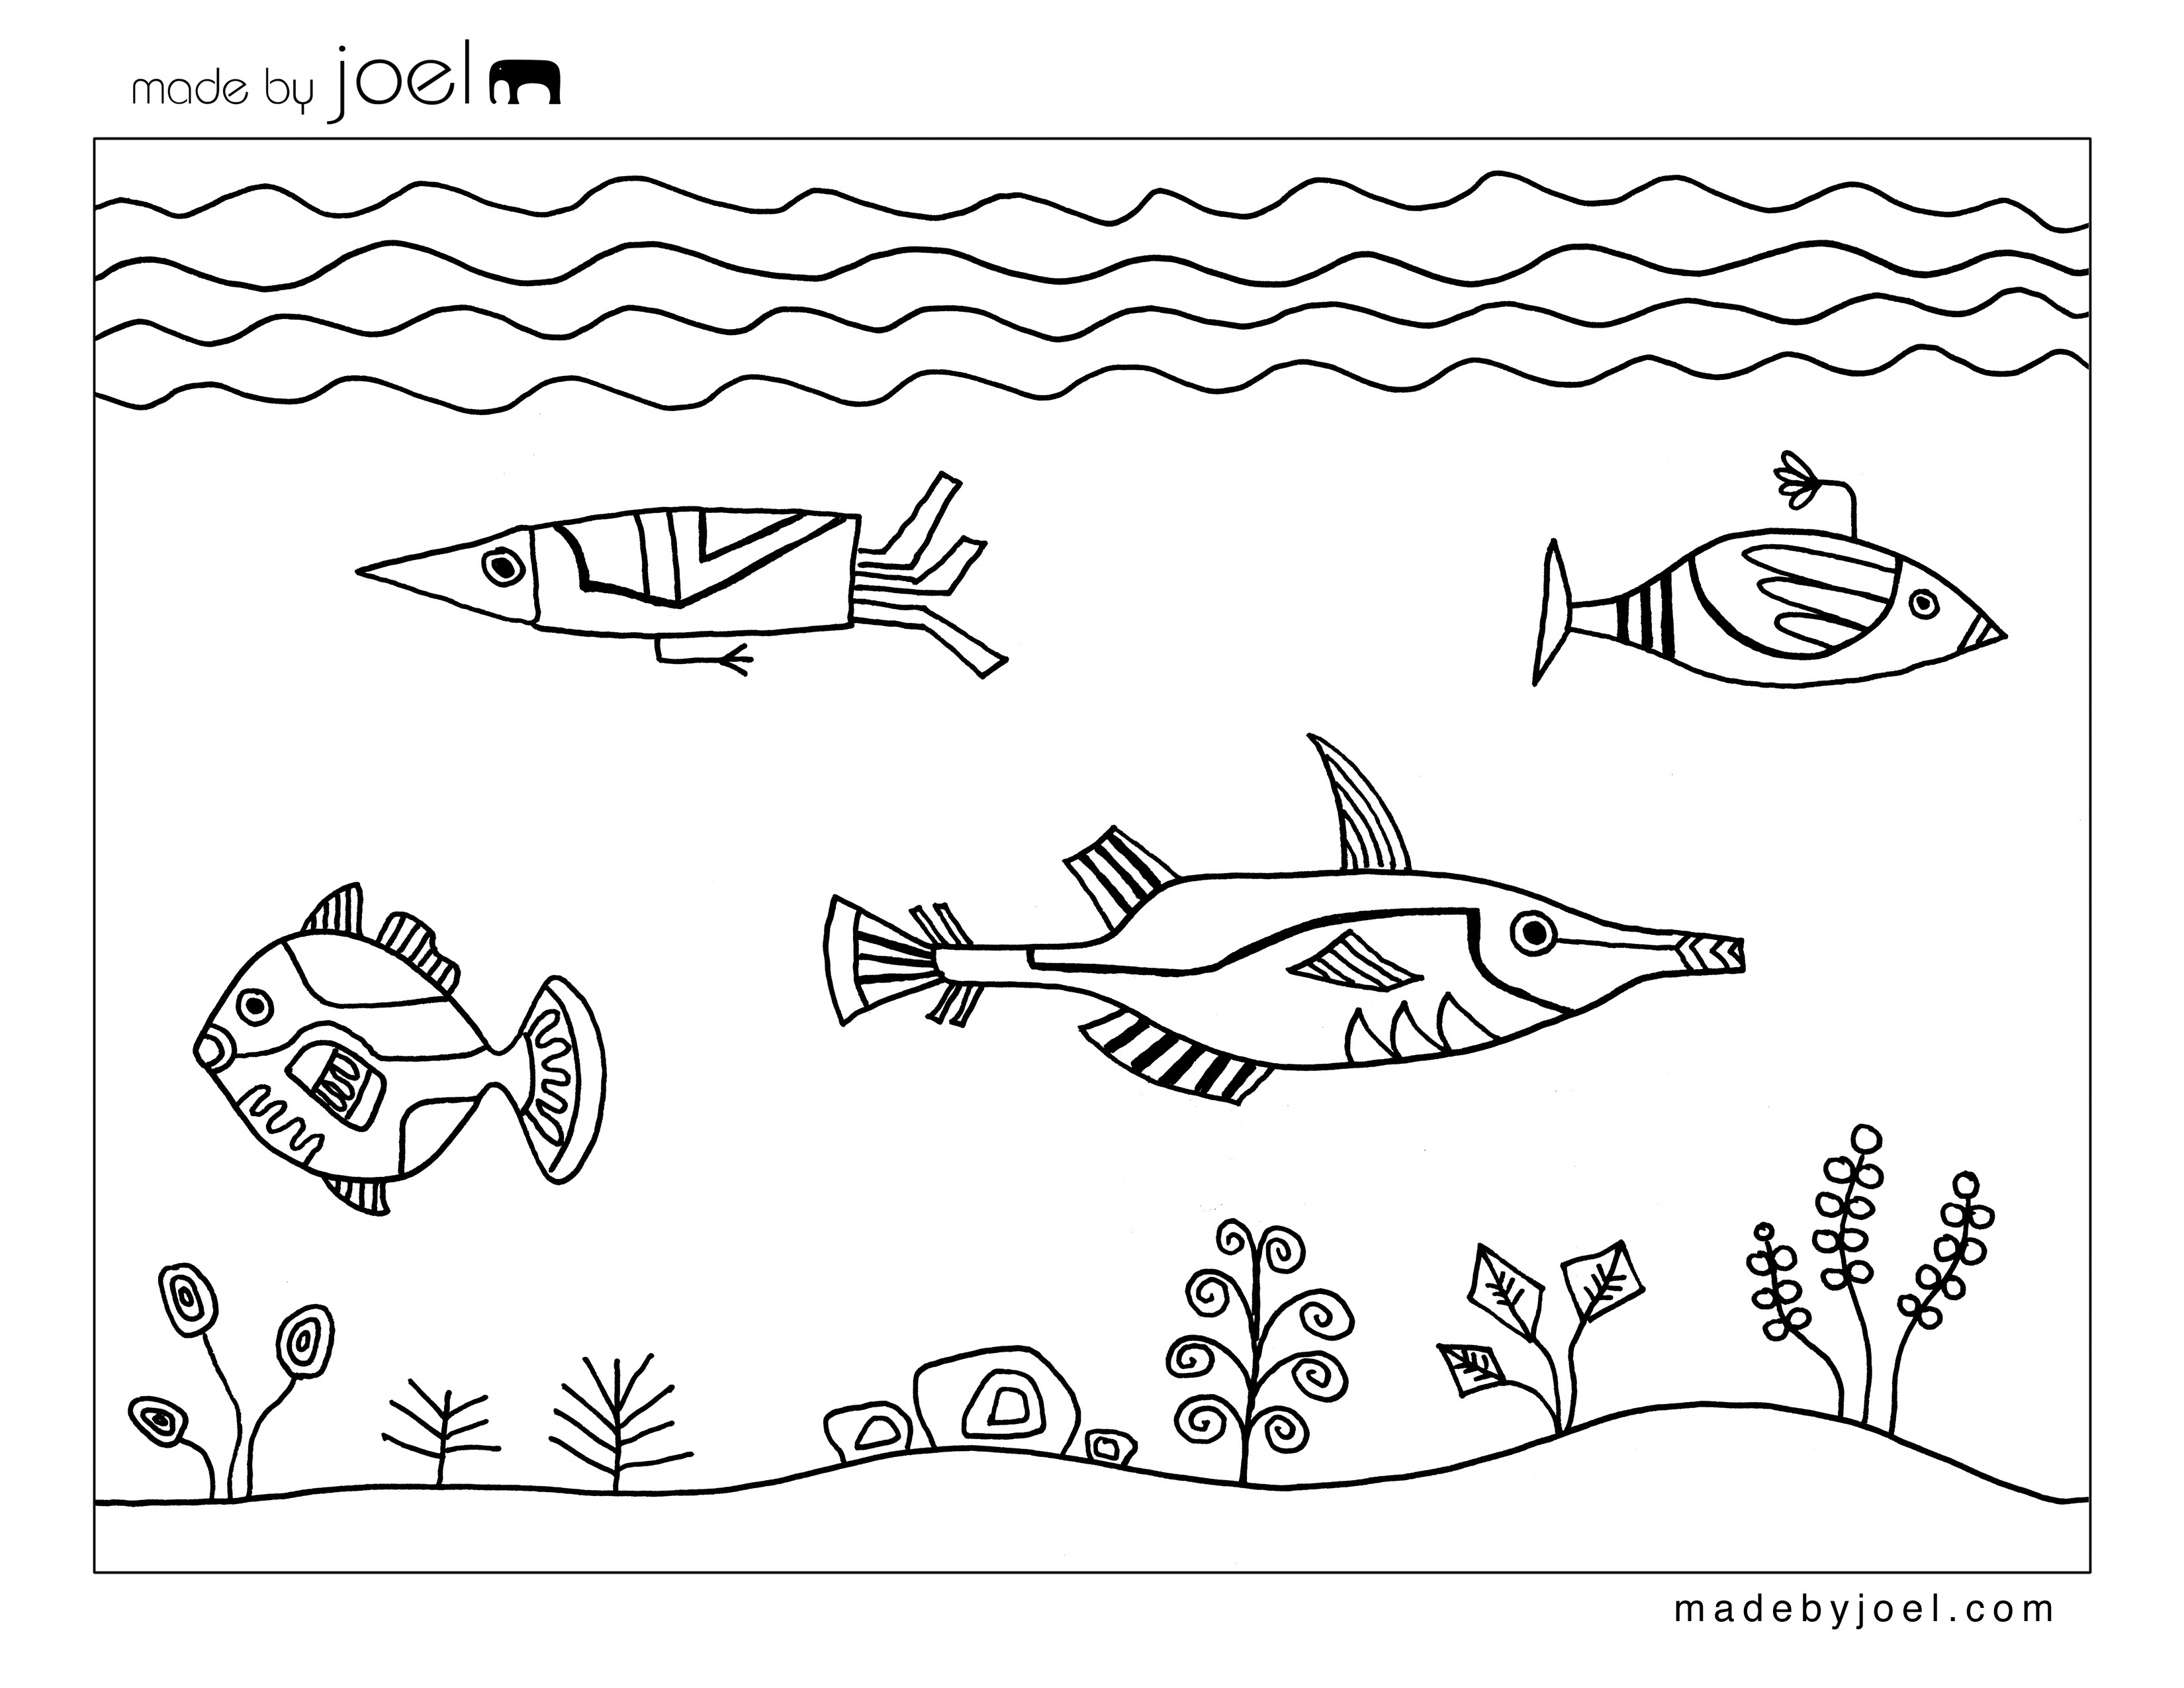 3300x2550 Made By Joel Underwater Design Coloring Sheet